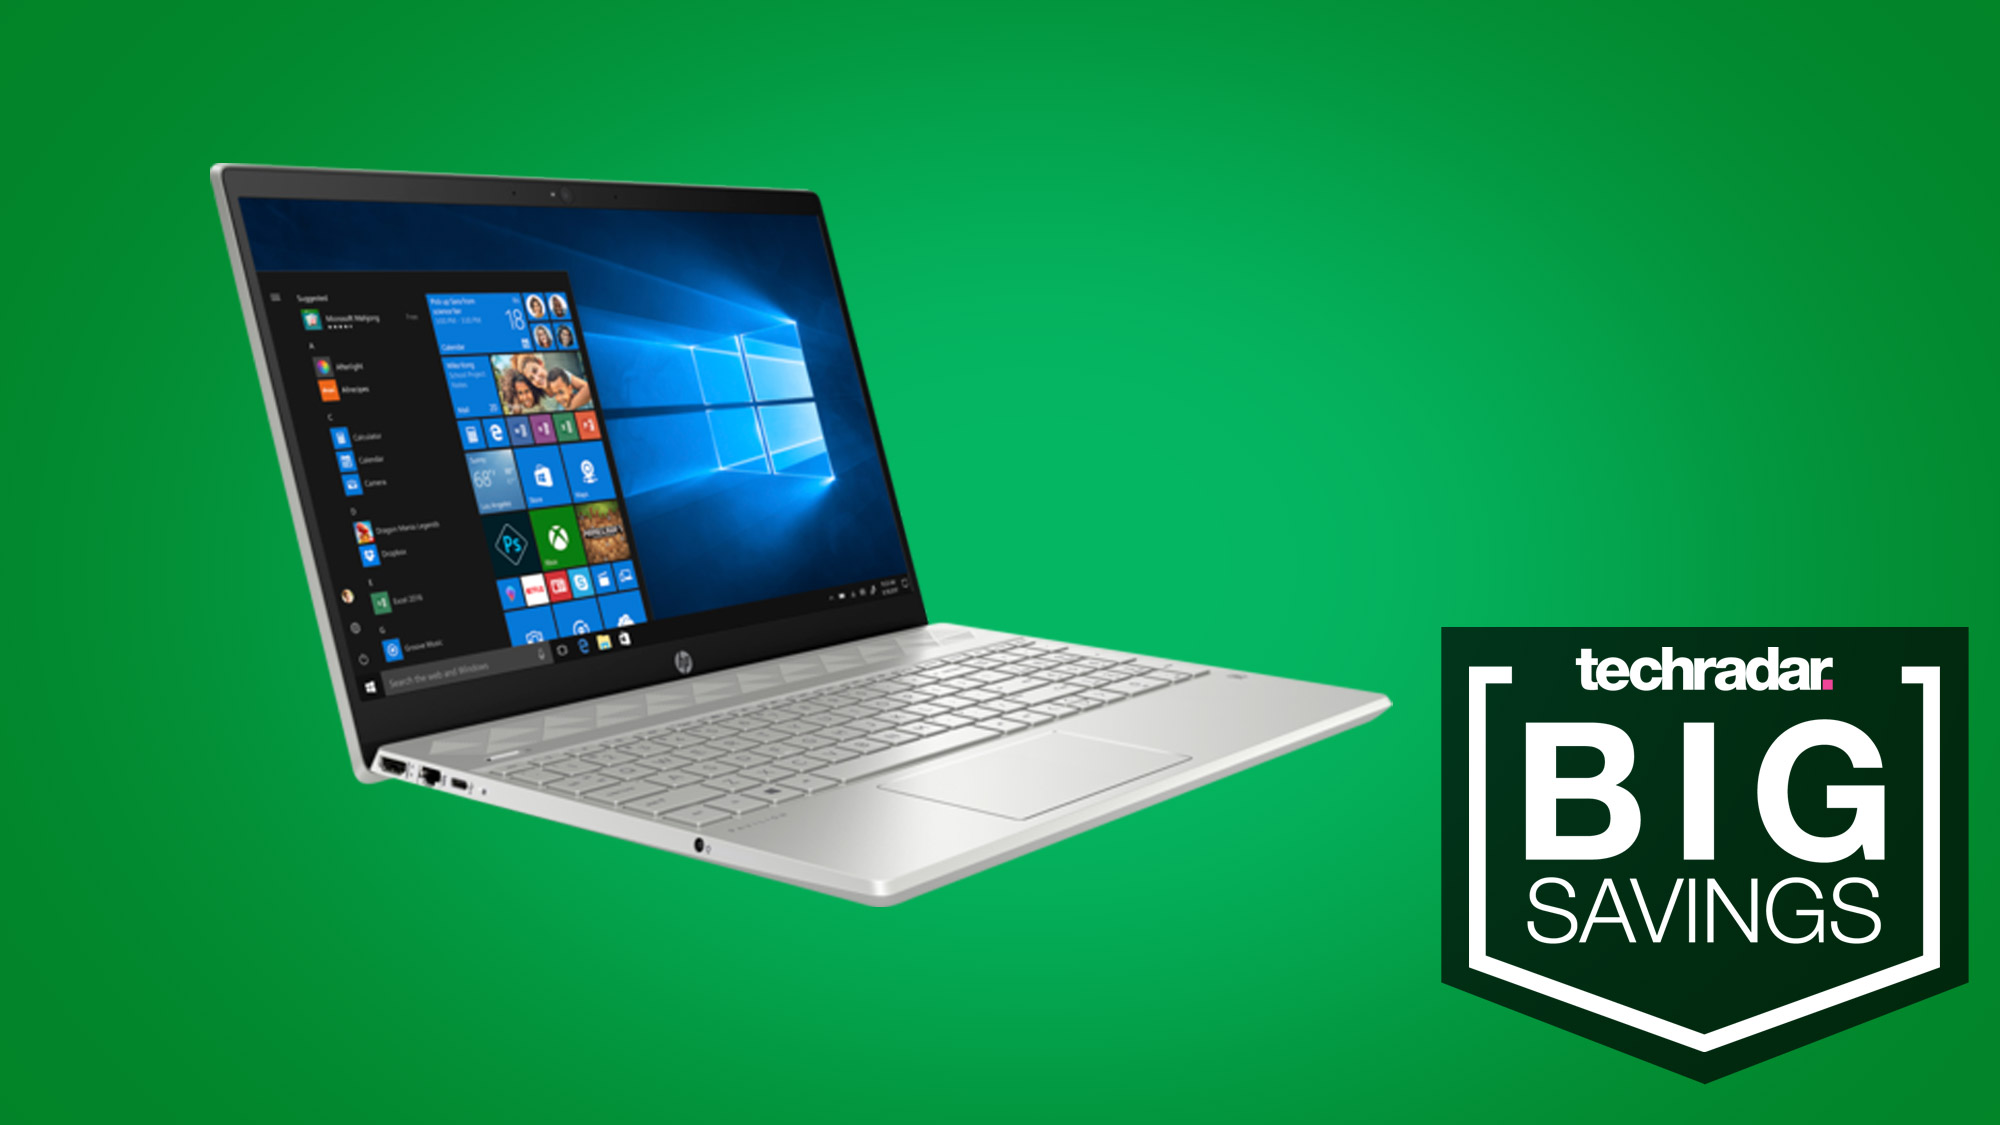 Laptop deal: HP drops $720 off the price of its Pavilion 15z touch laptop